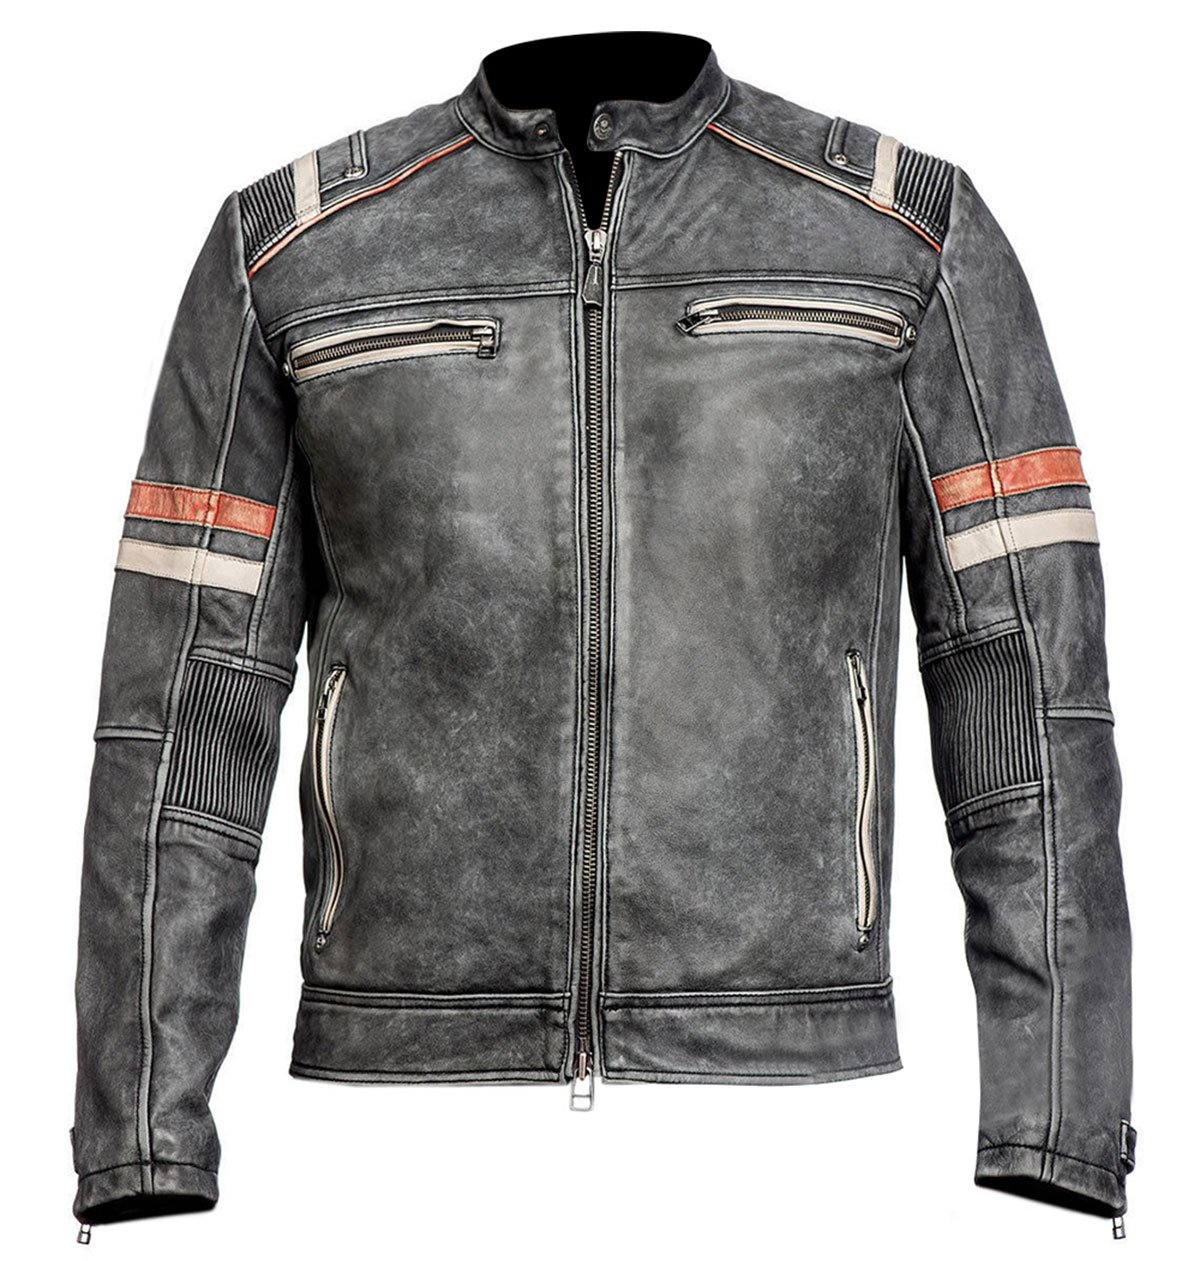 Cafe Racer Jacket Distressed Moto Vintage Black Motorcycle Leather Jacket by CHICAGO-FASHIONS